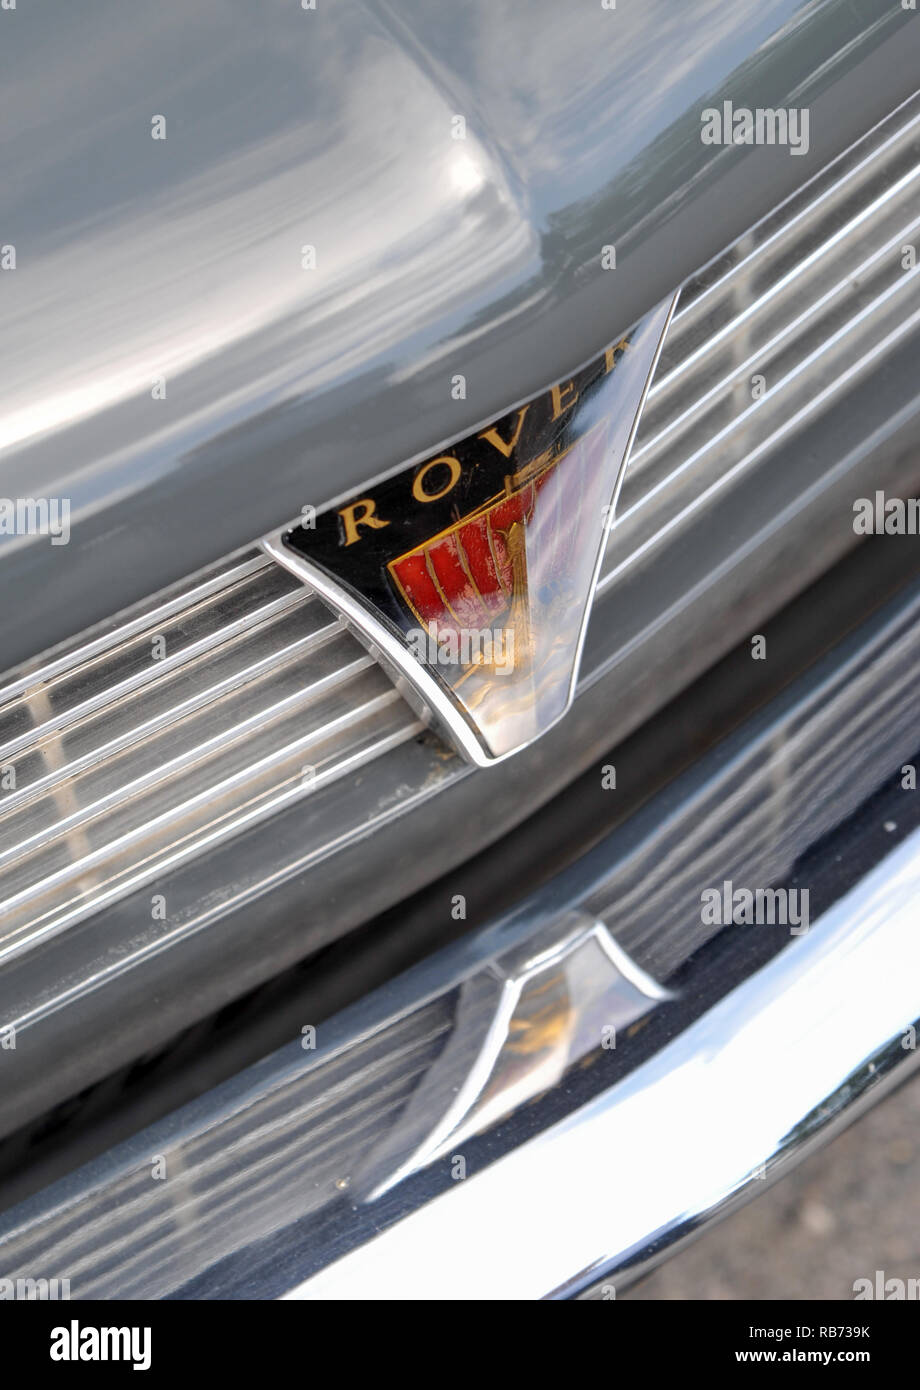 1963 Rover 2000, very early Rover P6 car - Stock Image